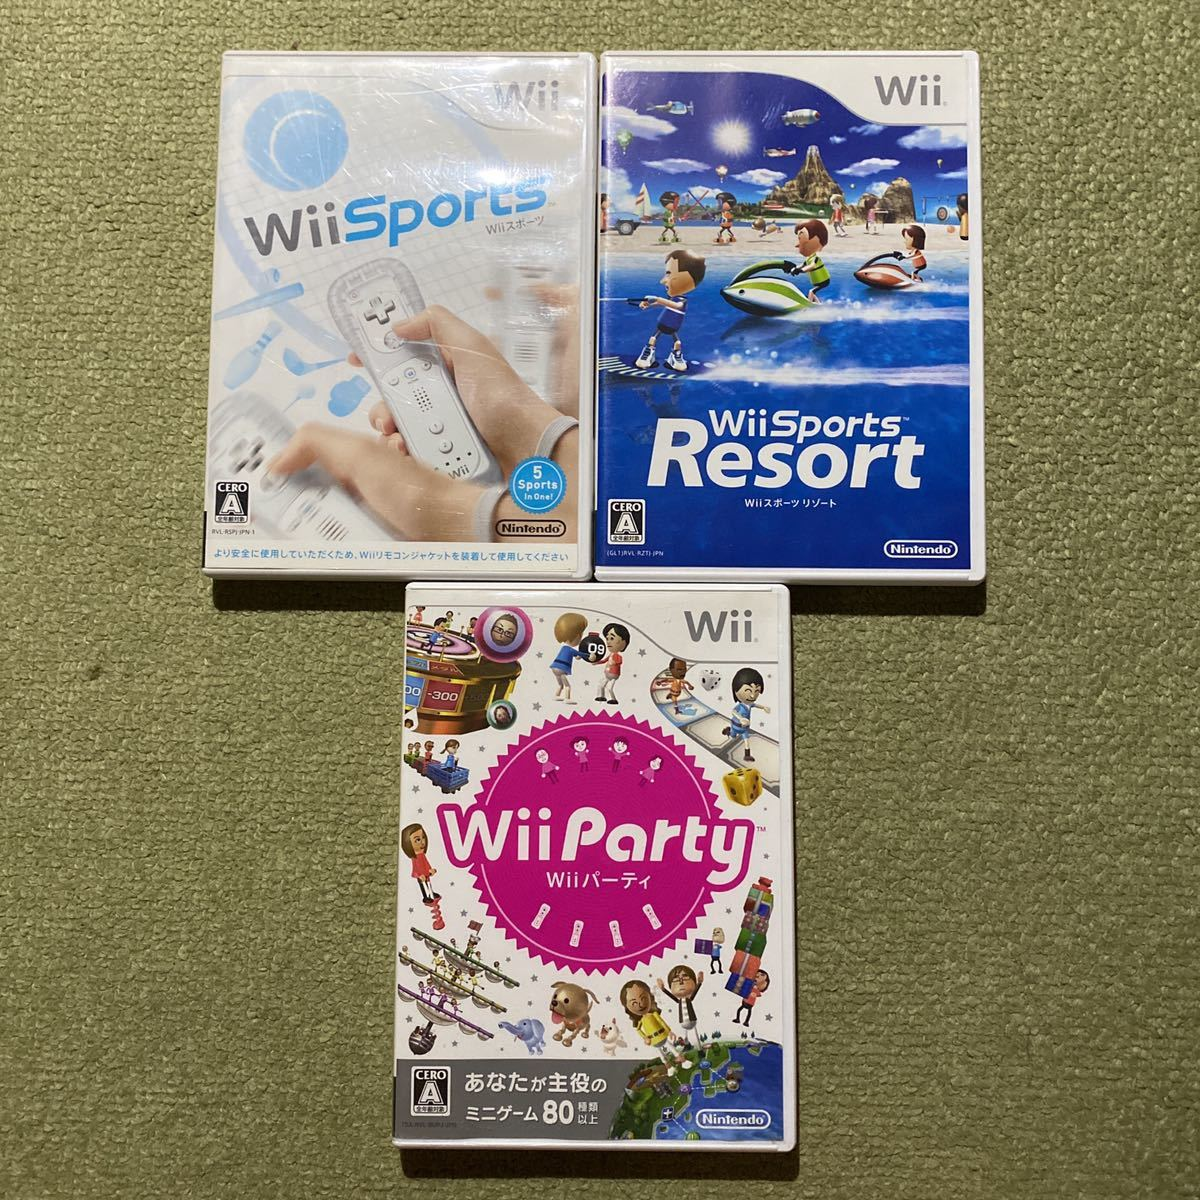 Wii Wii party Wii Sports 3本セット